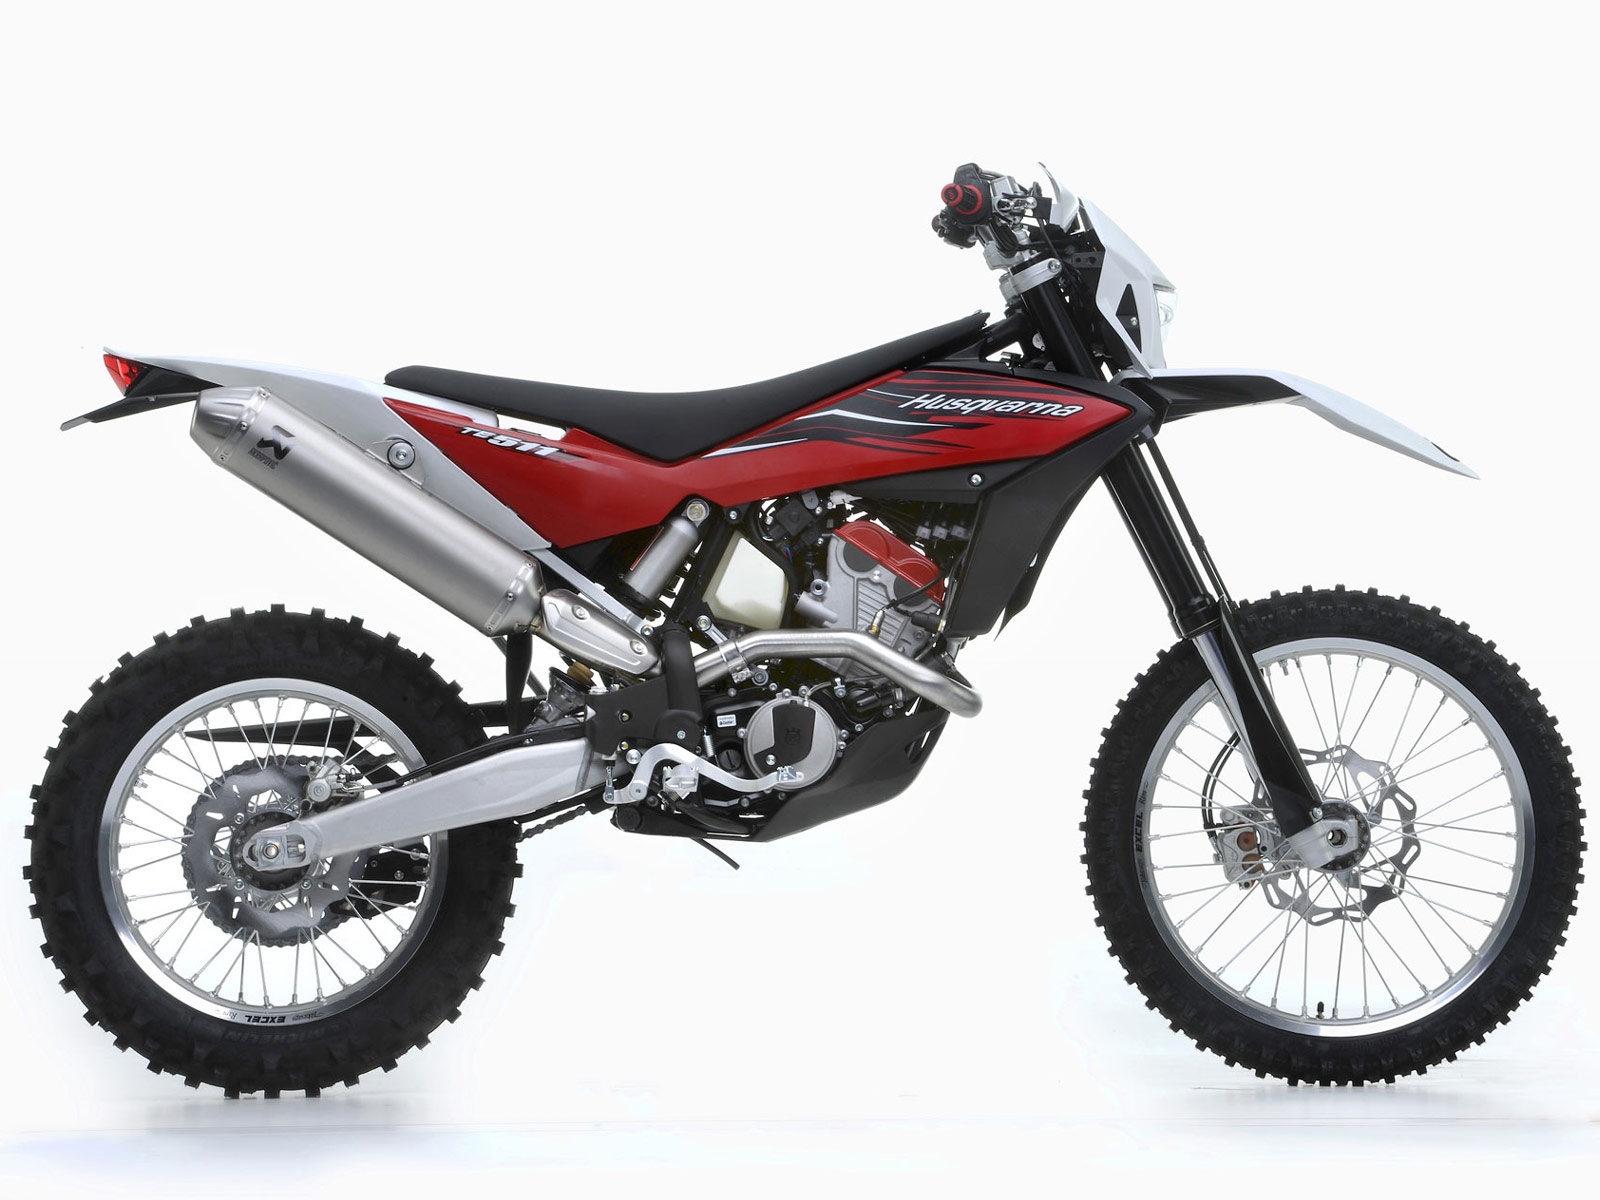 Husqvarna te511 photo - 5